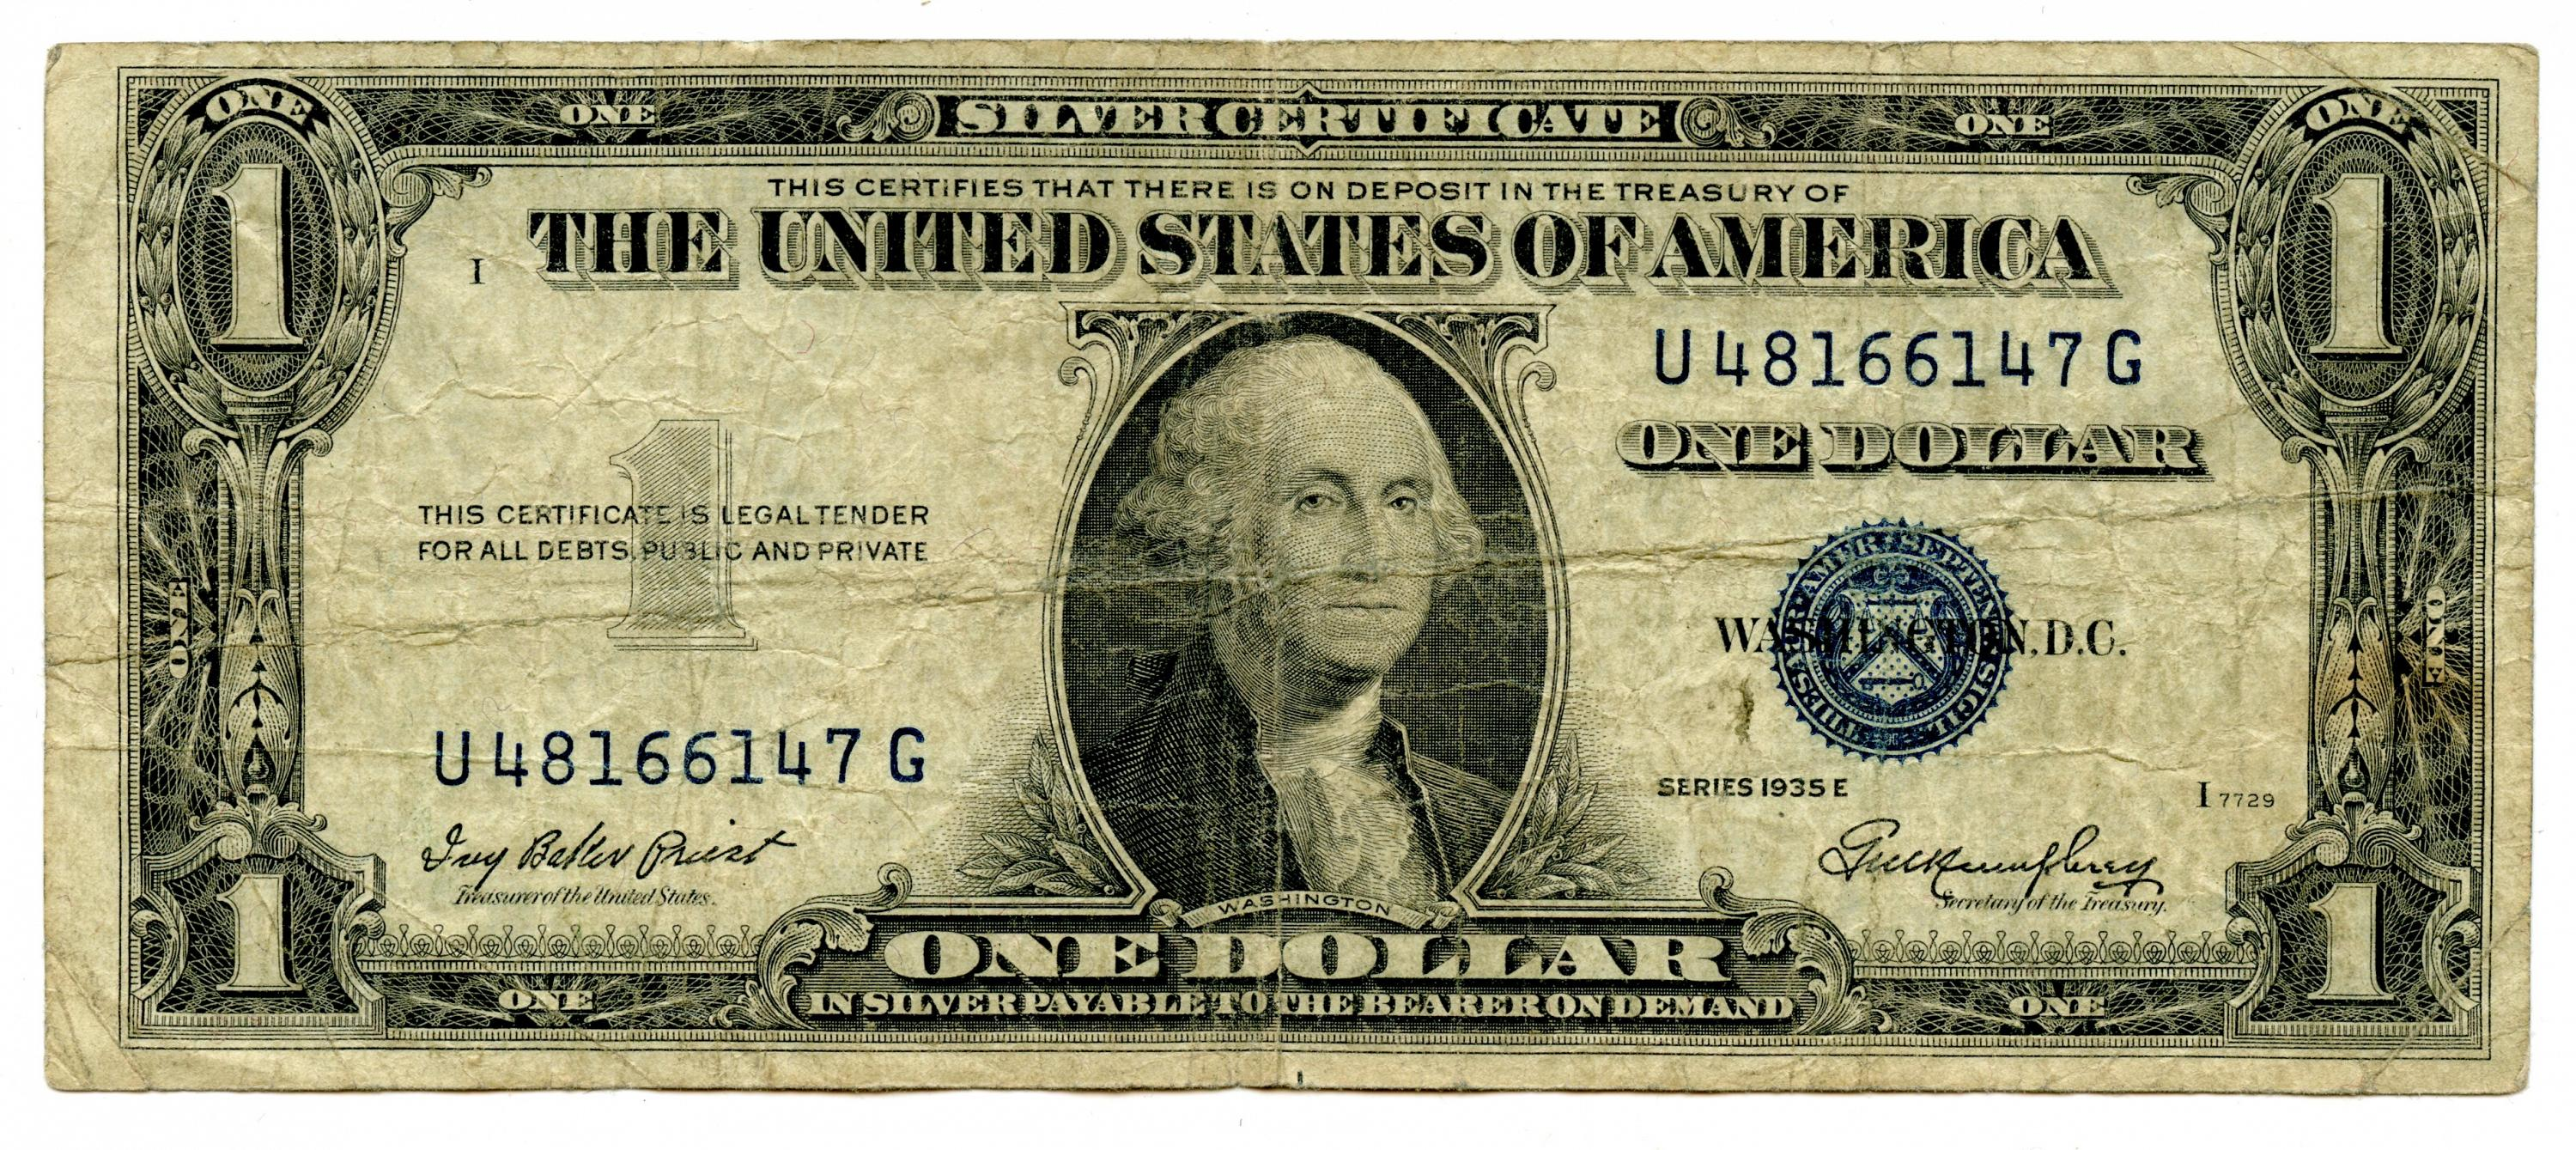 Three 1 Dollar Silver Certificates For Sale Buy Now Online